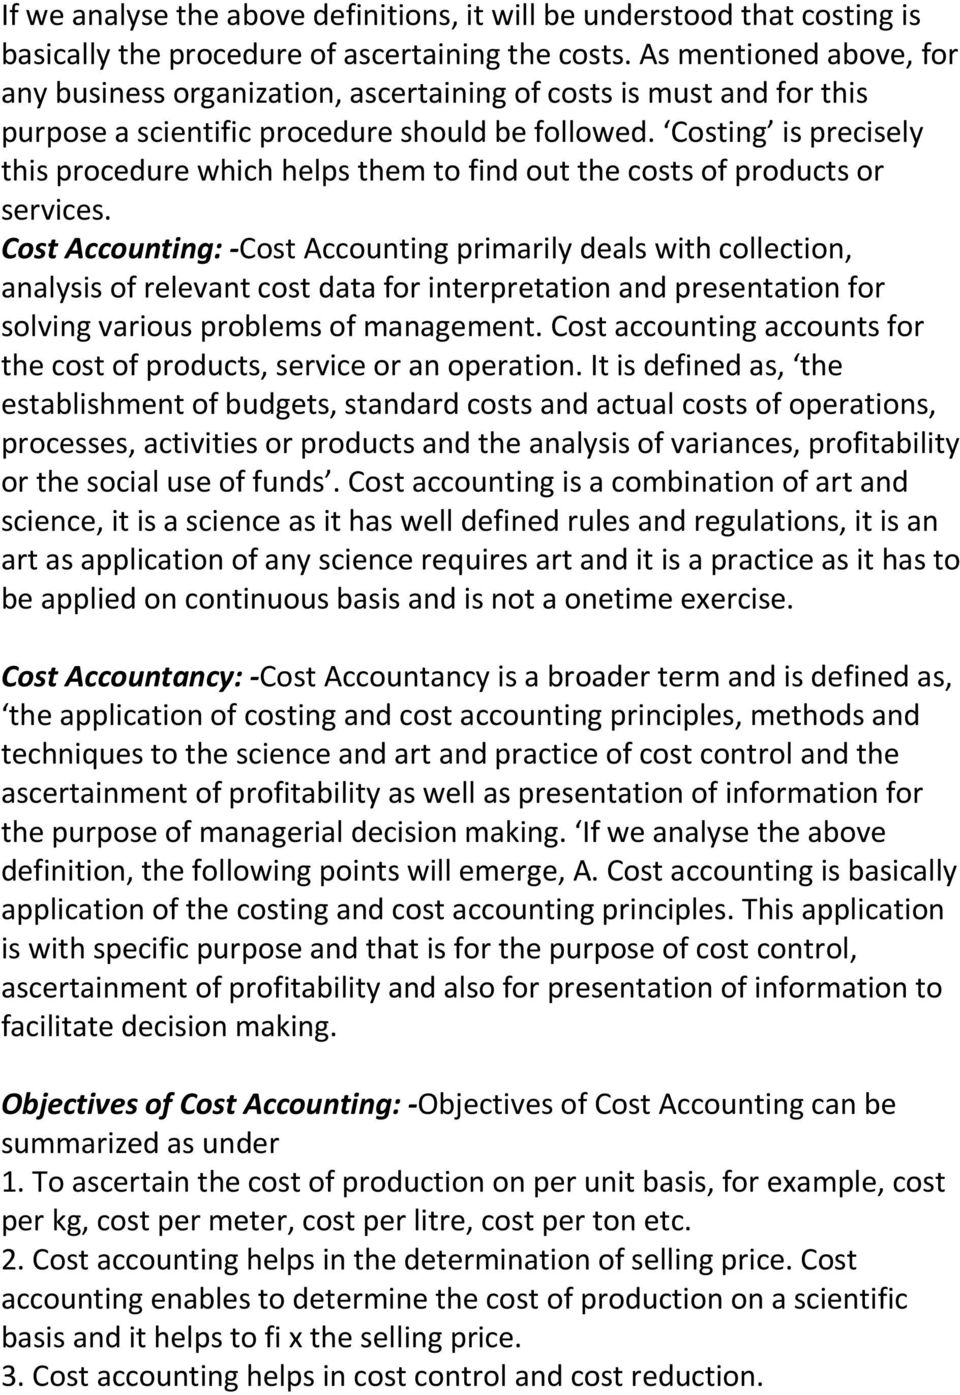 Costing is precisely this procedure which helps them to find out the costs of products or services.